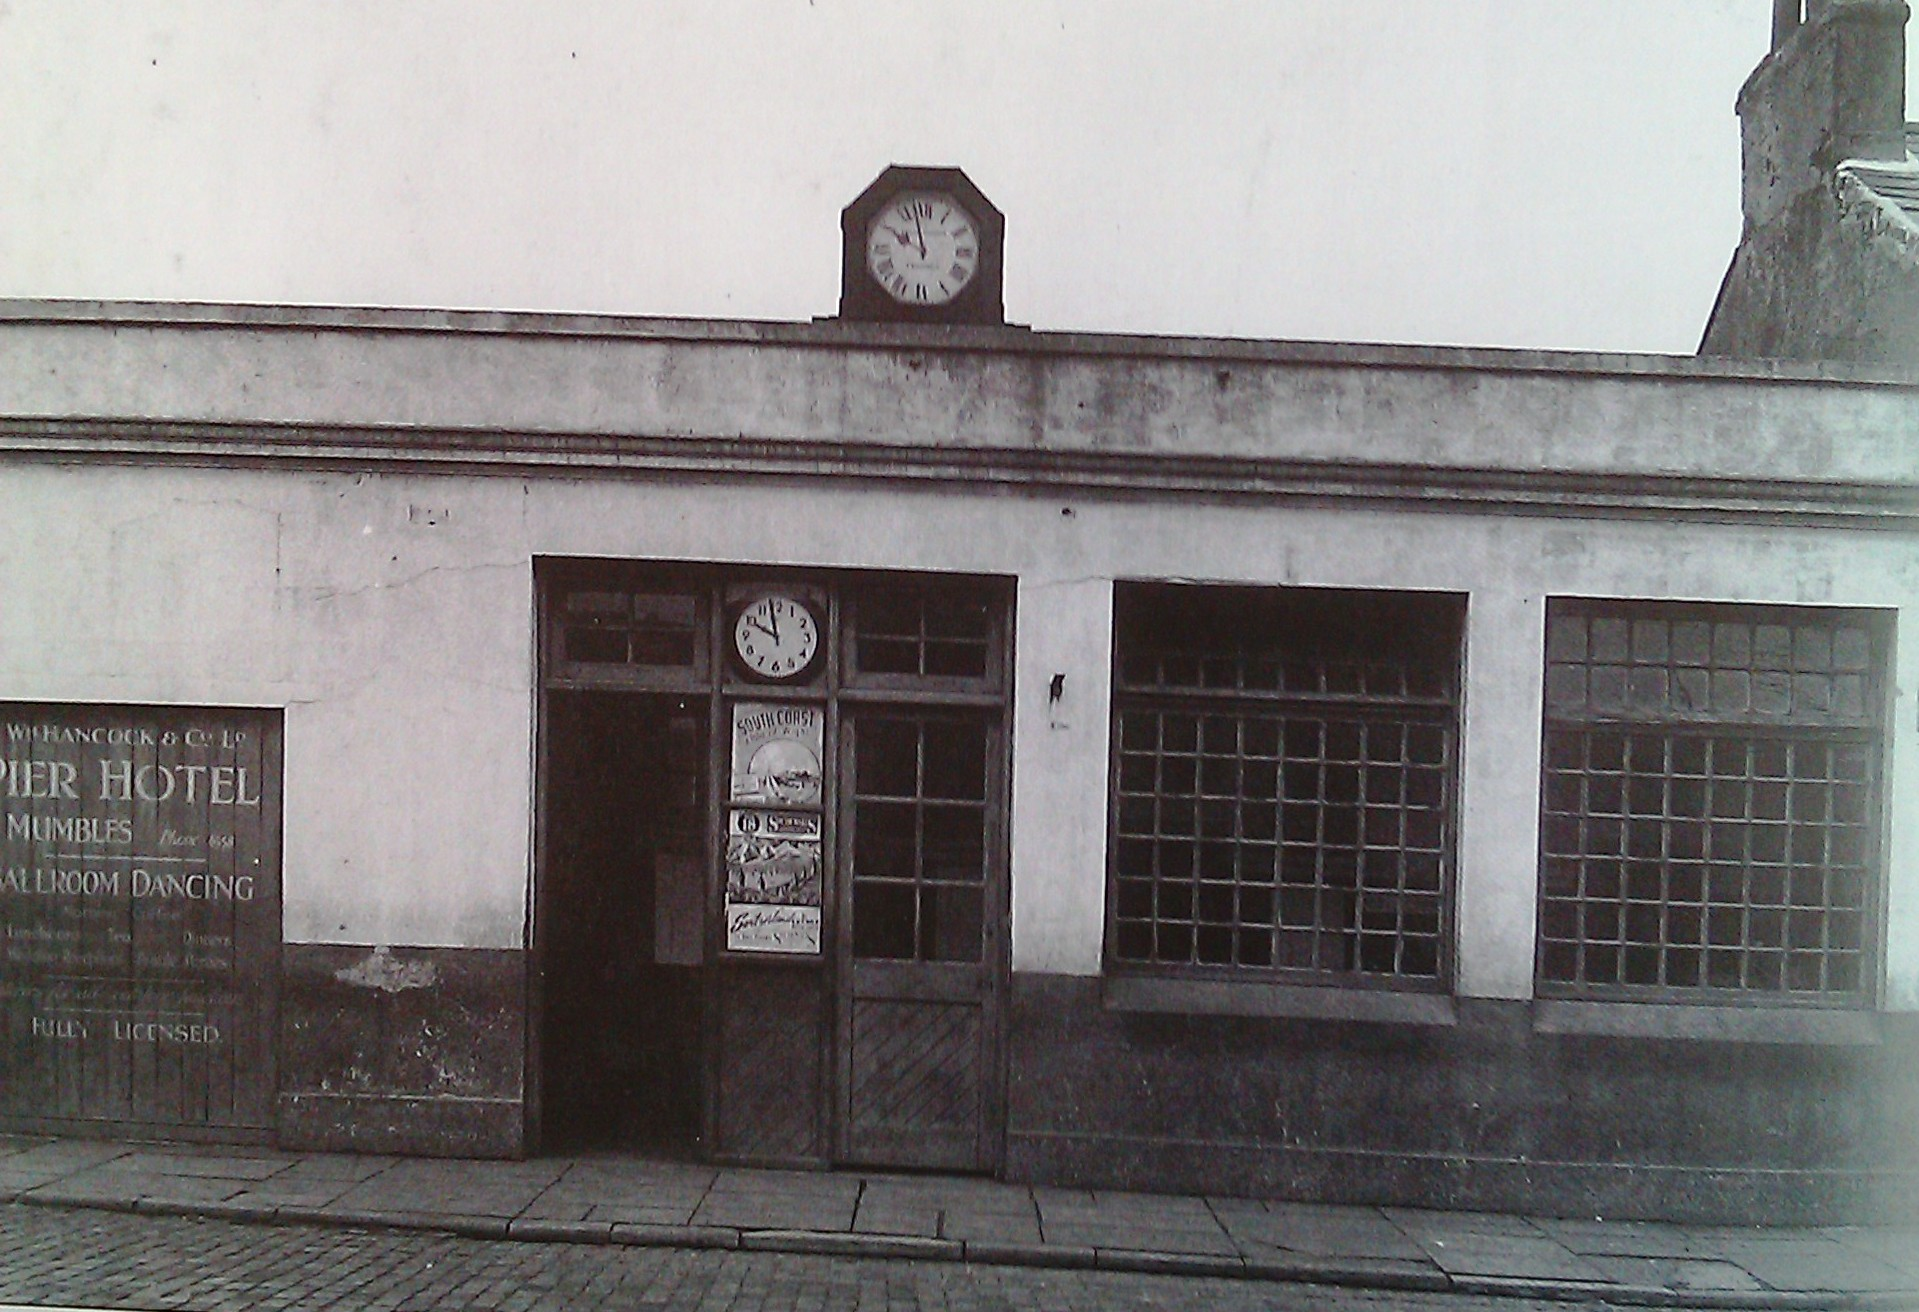 rutland street m train station 1951 - The Swansea & Mumbles Railway